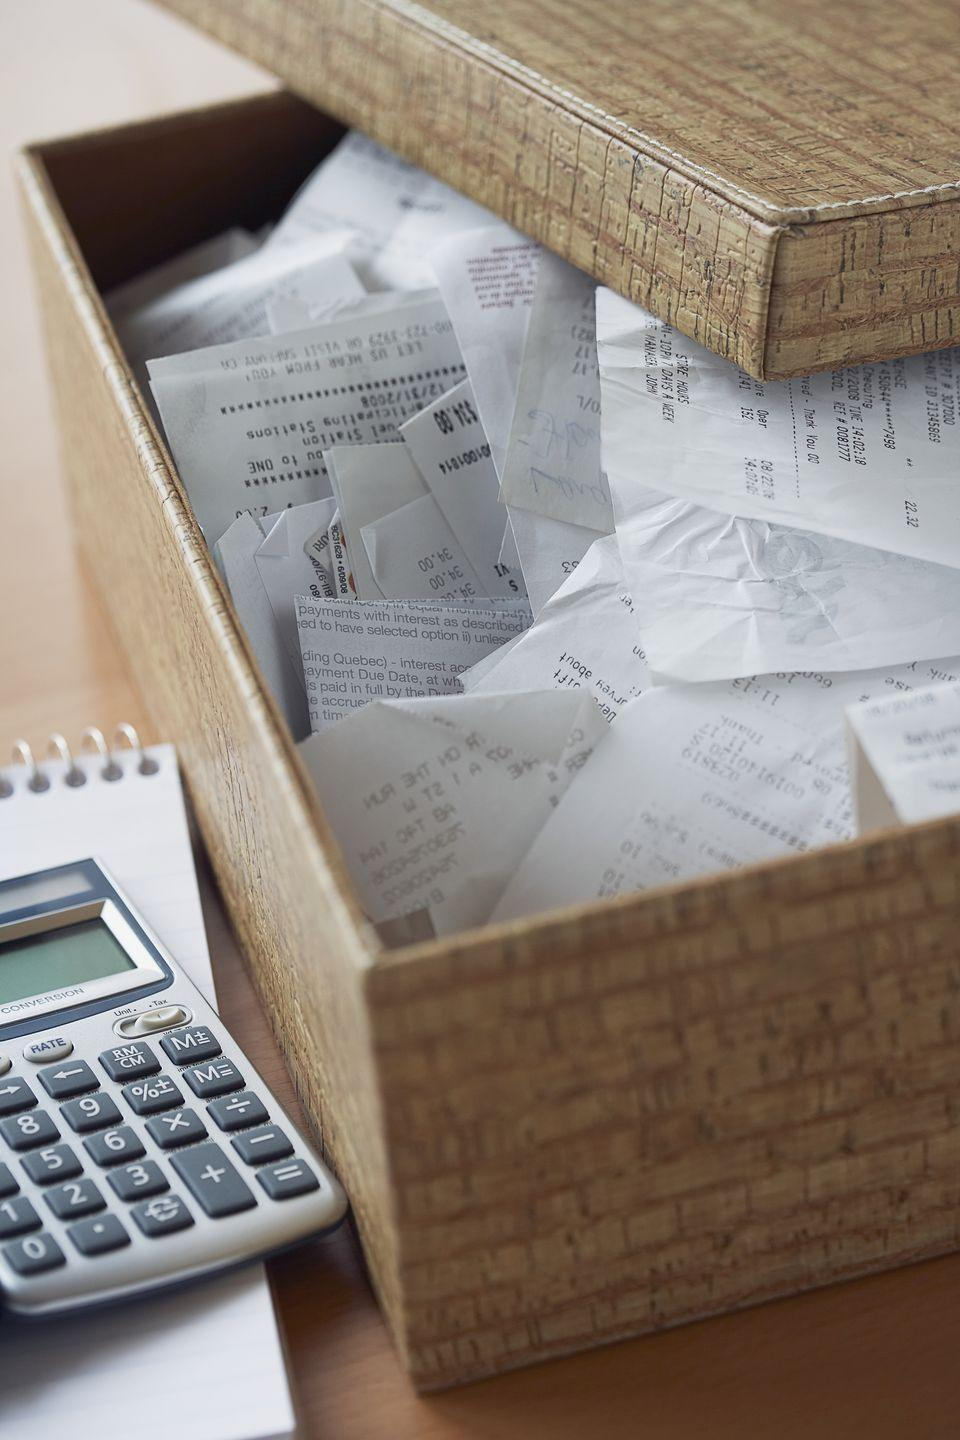 """<p>Although paperless receipts are slowly but surely becoming the norm, there are still plenty of retailers and restaurants that give out the paper kind. """"Save receipts on the fly with Shoeboxed, an app that lets you photograph store slips or forward e-mail receipts,"""" says Donna Smallin, author of <a href=""""http://www.amazon.com/Clear-Clutter-Find-Happiness-Decluttering-ebook/dp/B00KLNAIKS?tag=syn-yahoo-20&ascsubtag=%5Bartid%7C10063.g.36459111%5Bsrc%7Cyahoo-us"""" rel=""""nofollow noopener"""" target=""""_blank"""" data-ylk=""""slk:Clear the Clutter, Find Happiness"""" class=""""link rapid-noclick-resp"""">Clear the Clutter, Find Happiness</a>. Once uploaded, you can categorize receipts and easily find them on the searchable server. </p><p><a class=""""link rapid-noclick-resp"""" href=""""https://go.redirectingat.com?id=74968X1596630&url=https%3A%2F%2Fitunes.apple.com%2Fus%2Fapp%2Fshoeboxed-receipt-tracker%2Fid322143854%3Fmt%3D8&sref=https%3A%2F%2Fwww.redbookmag.com%2Fhome%2Fg36459111%2Forganizing-every-room%2F"""" rel=""""nofollow noopener"""" target=""""_blank"""" data-ylk=""""slk:GET SHOEBOXED APP"""">GET SHOEBOXED APP</a></p>"""